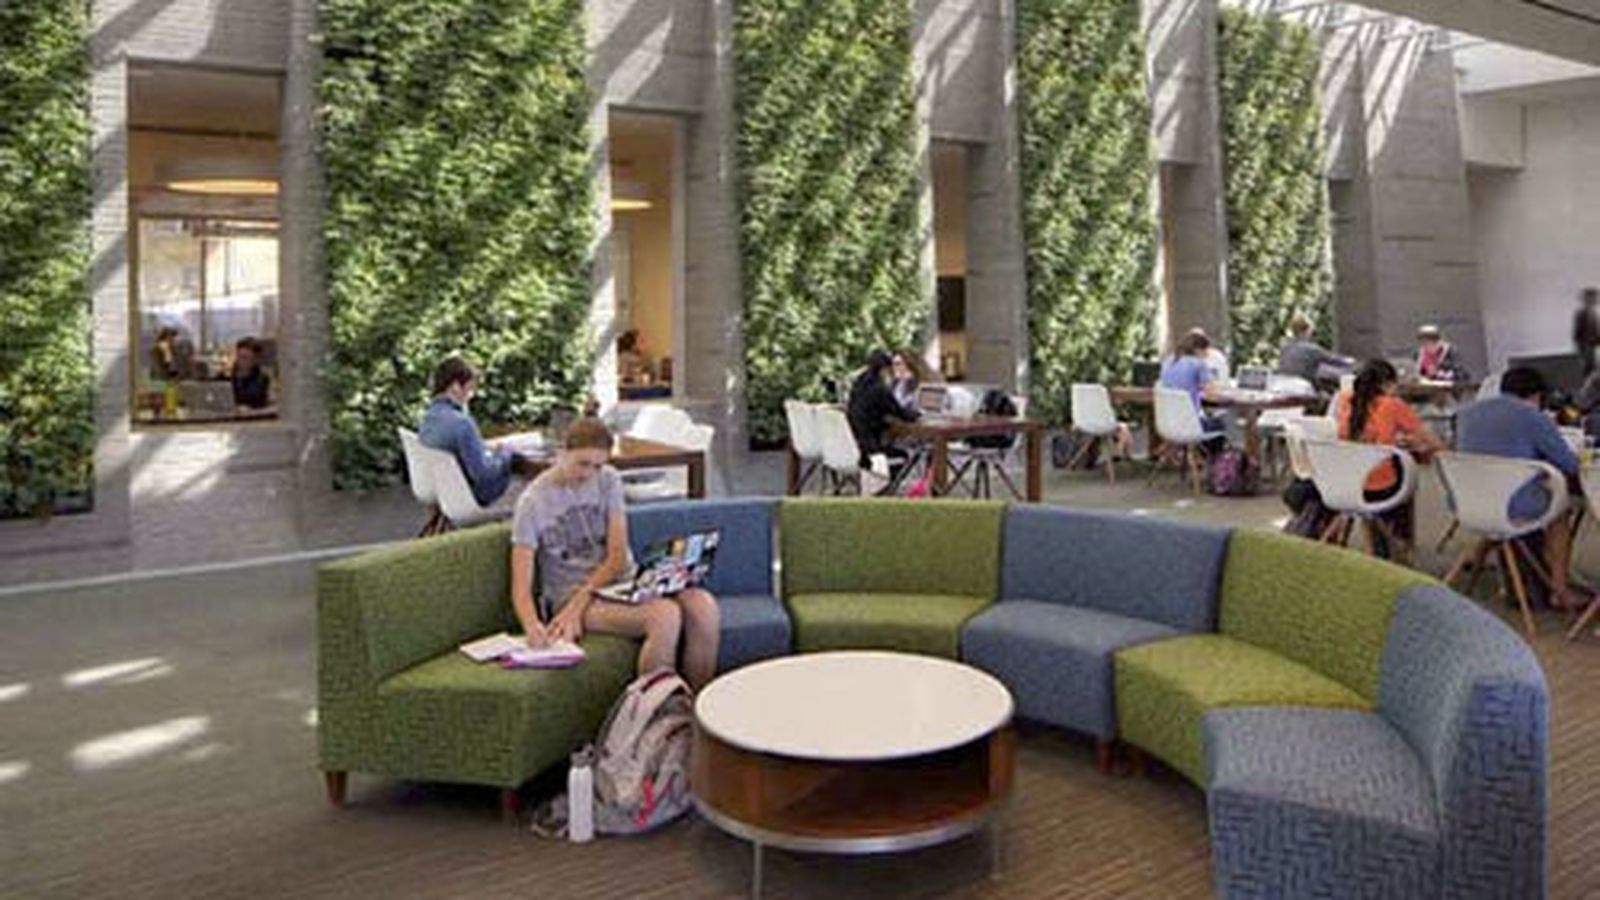 Georgetown University Wins 3 Aia Awards For Student Center Curbed Dc